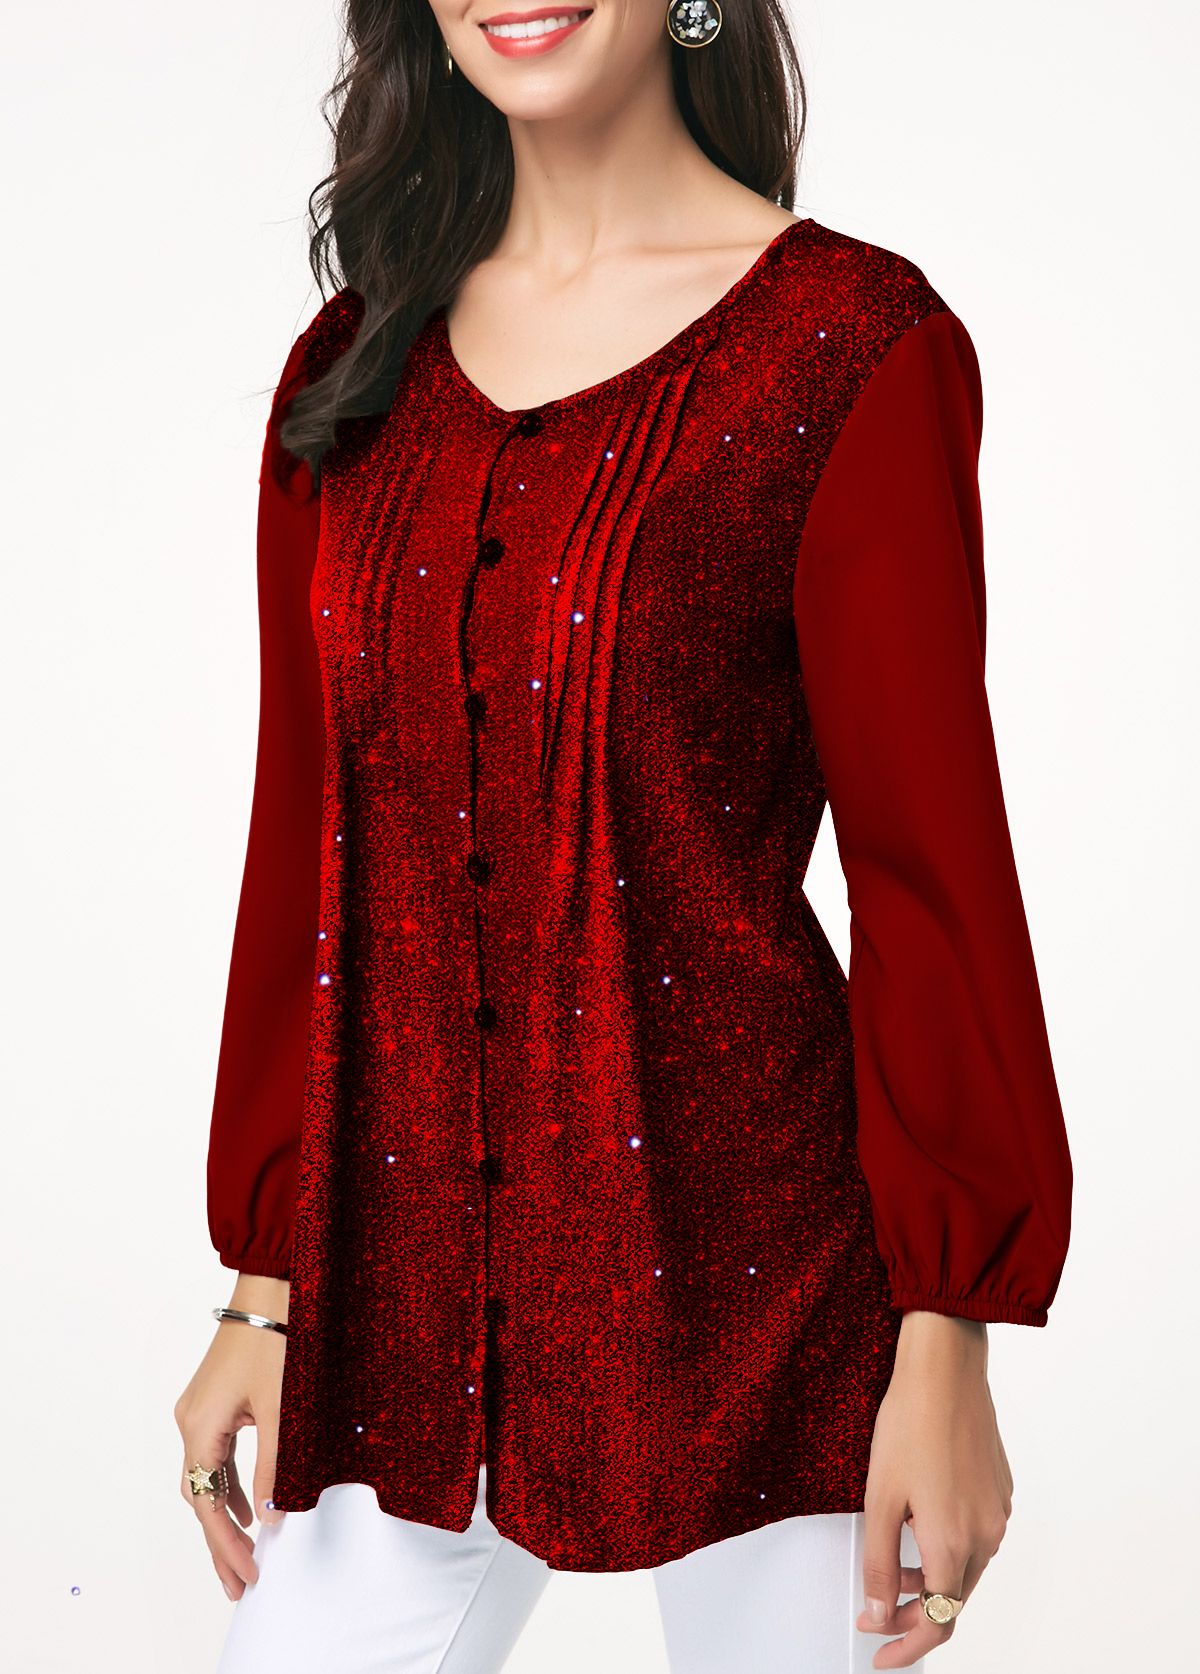 Button Front Wine Red Crinkle Chest Shining Blouse Trendy Tops For Women Trendy Fashion Tops Stylish Tops For Girls